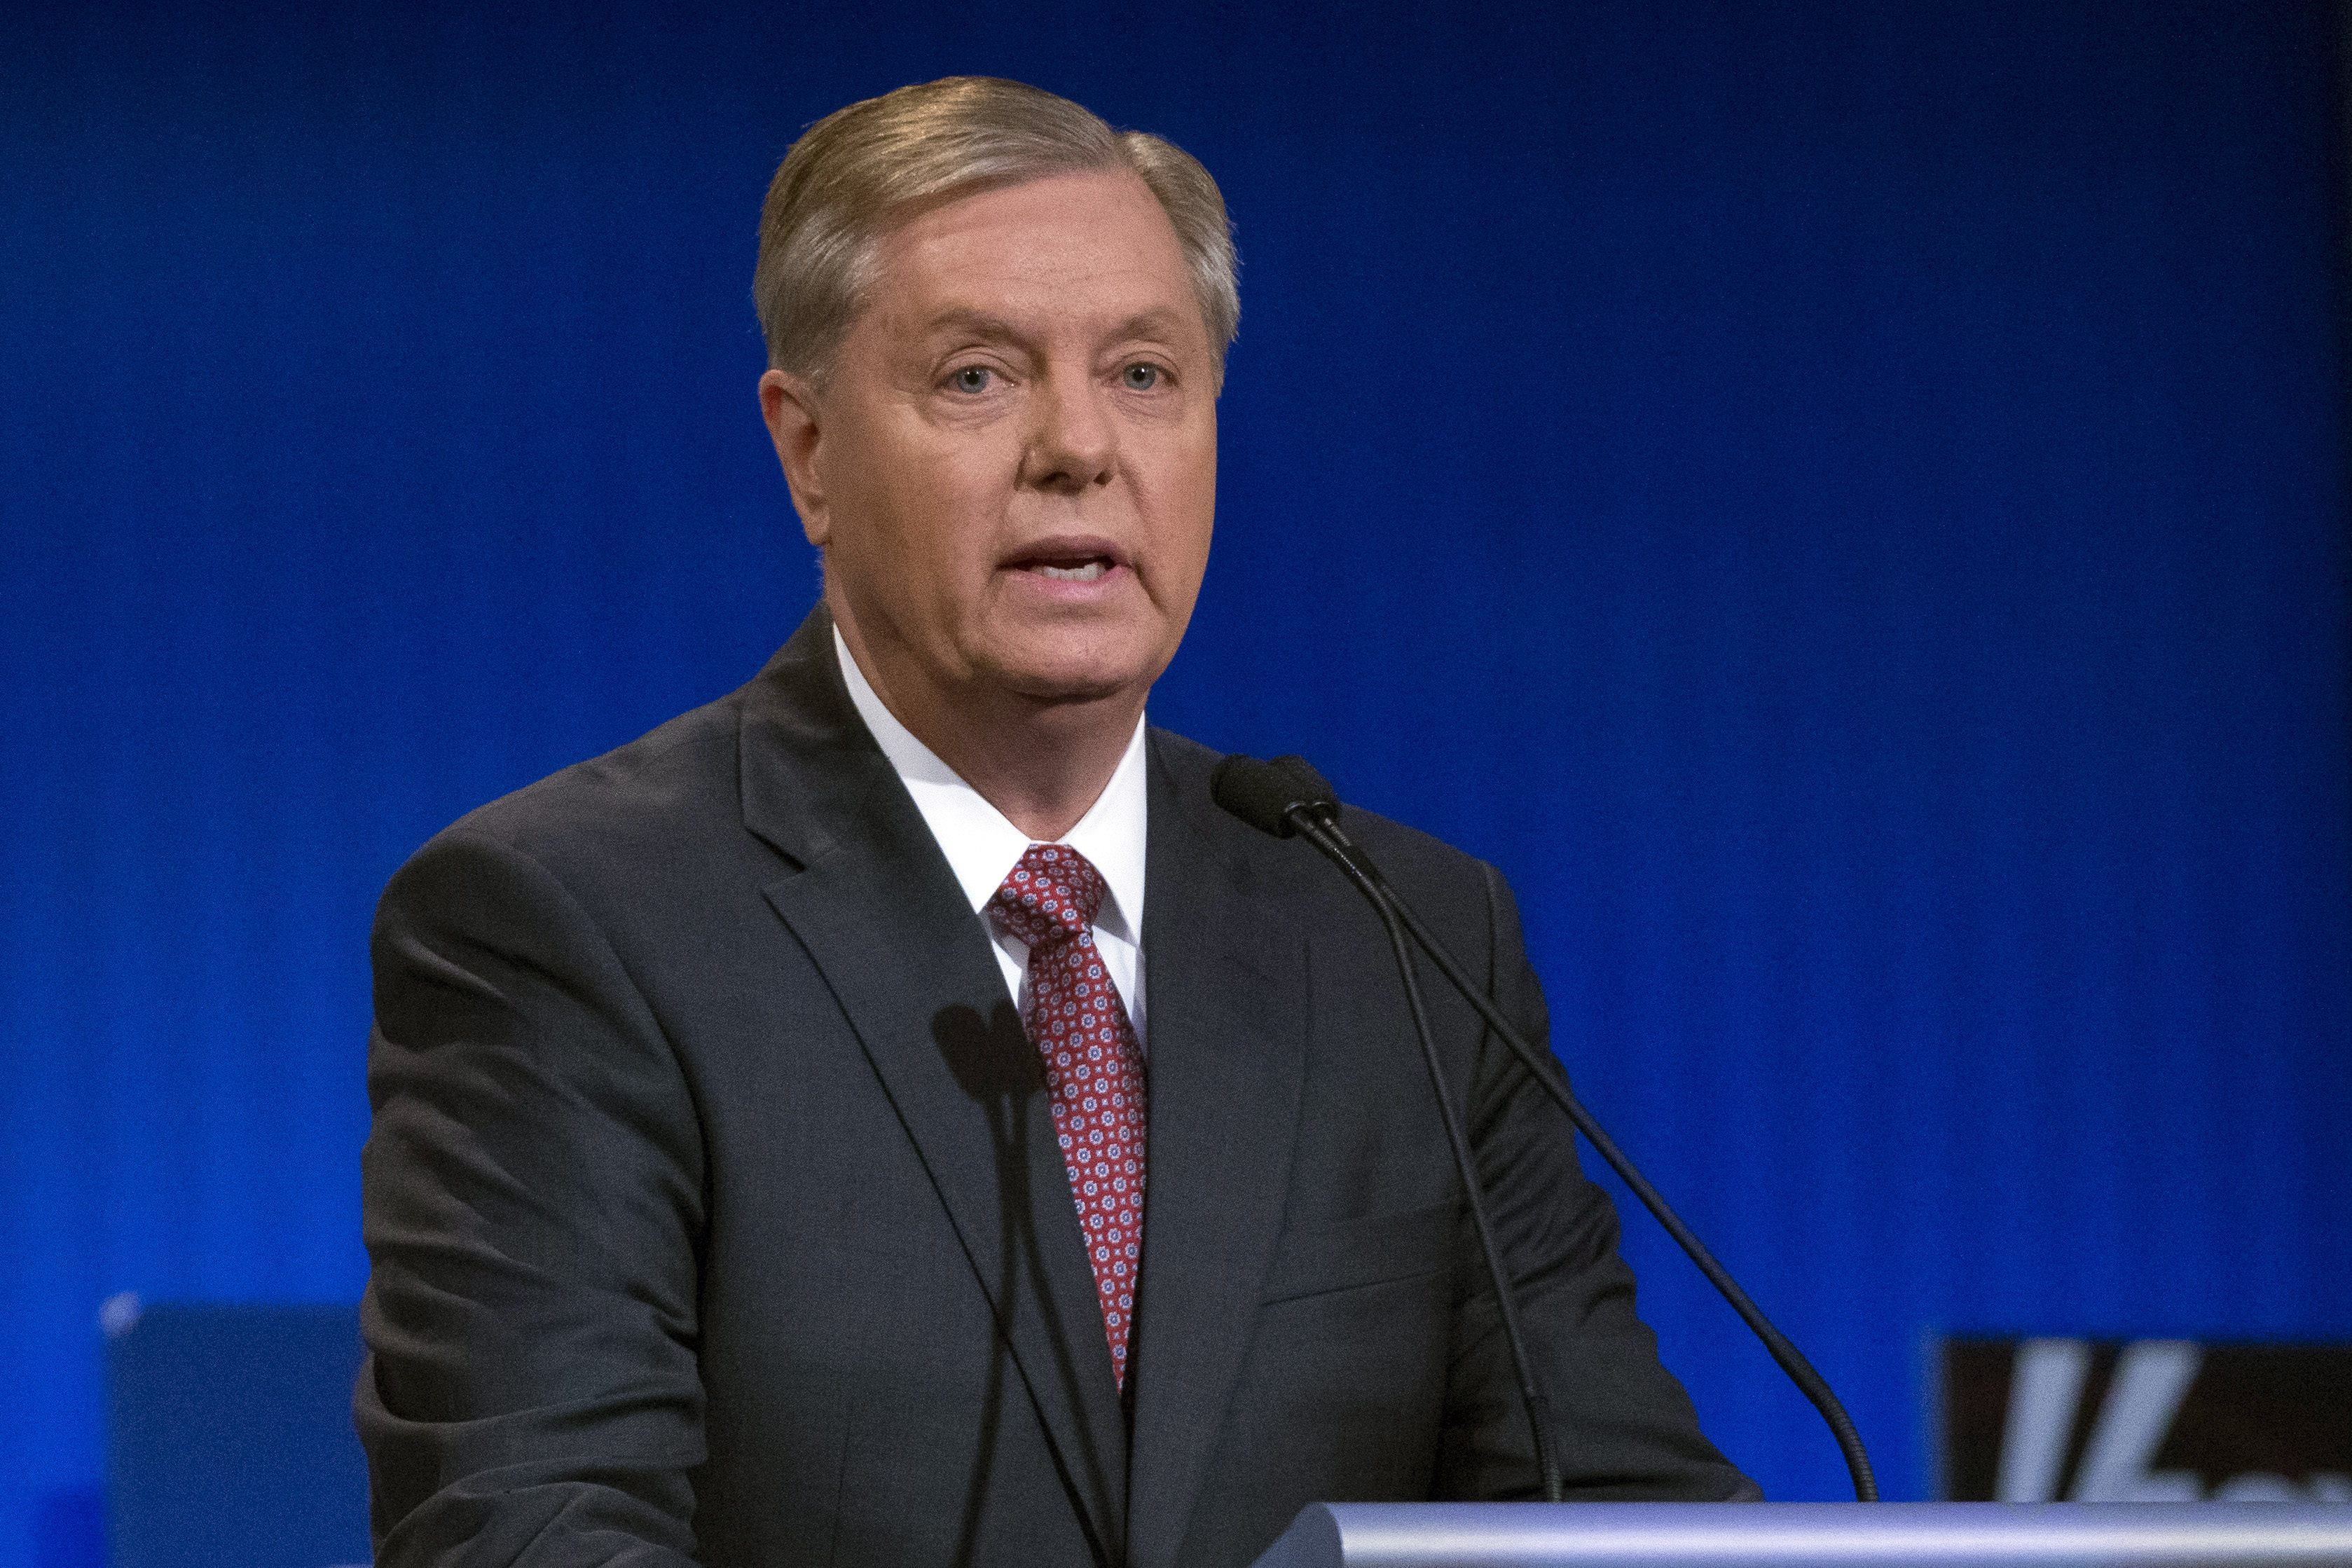 lindsey graham - photo #10